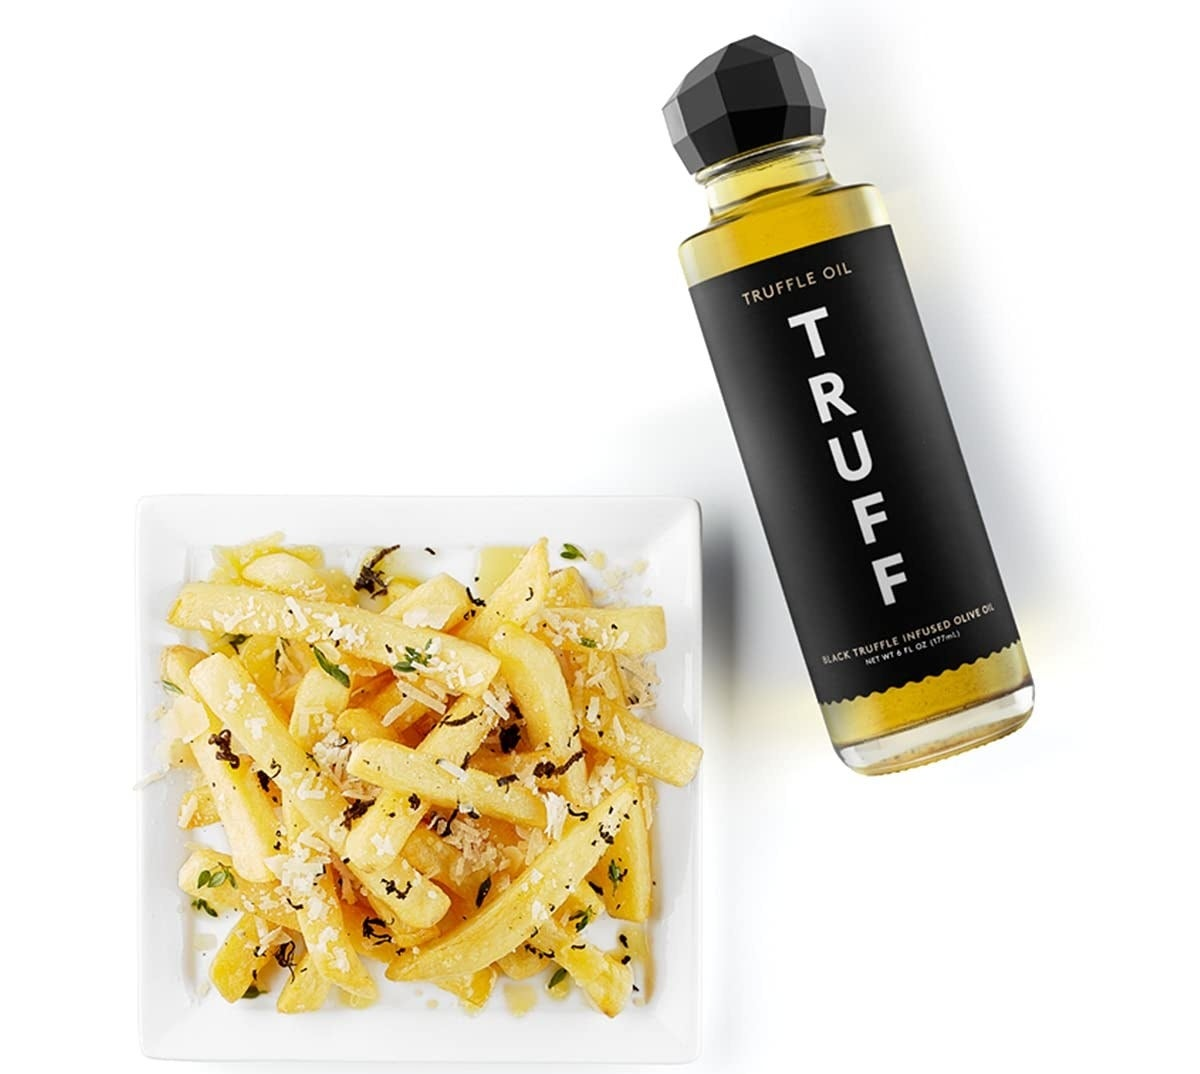 A bottle of the truffle oil sitting next to a plate of seasoned fries